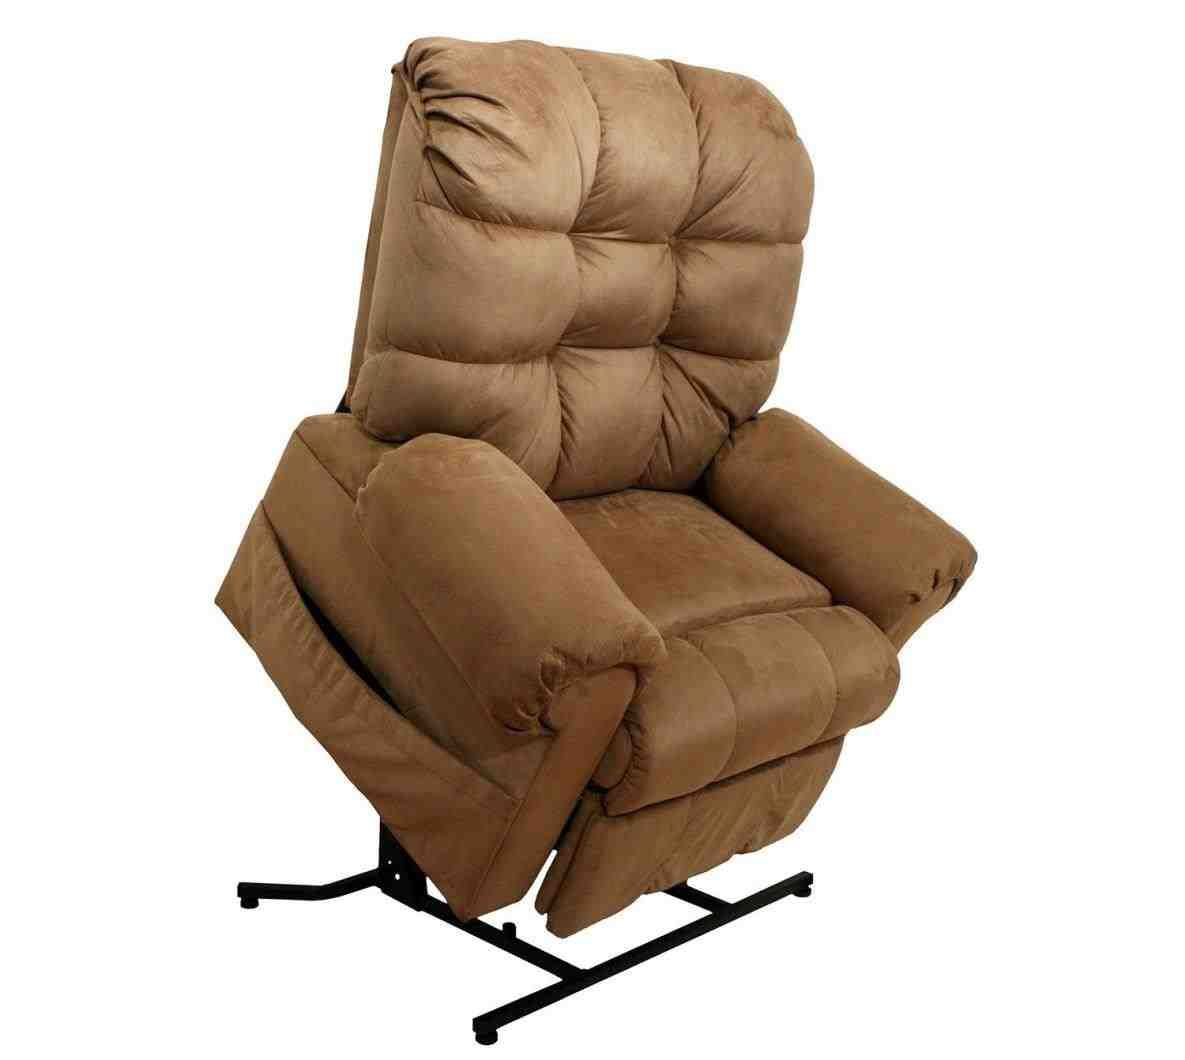 A Chair And A Half Recliner Chair And A Half Recliner Glider Room Awesome Rocker Recliner Chair For Modern Family Chairs U Bring Mode Recliner Lift Recliners Chair